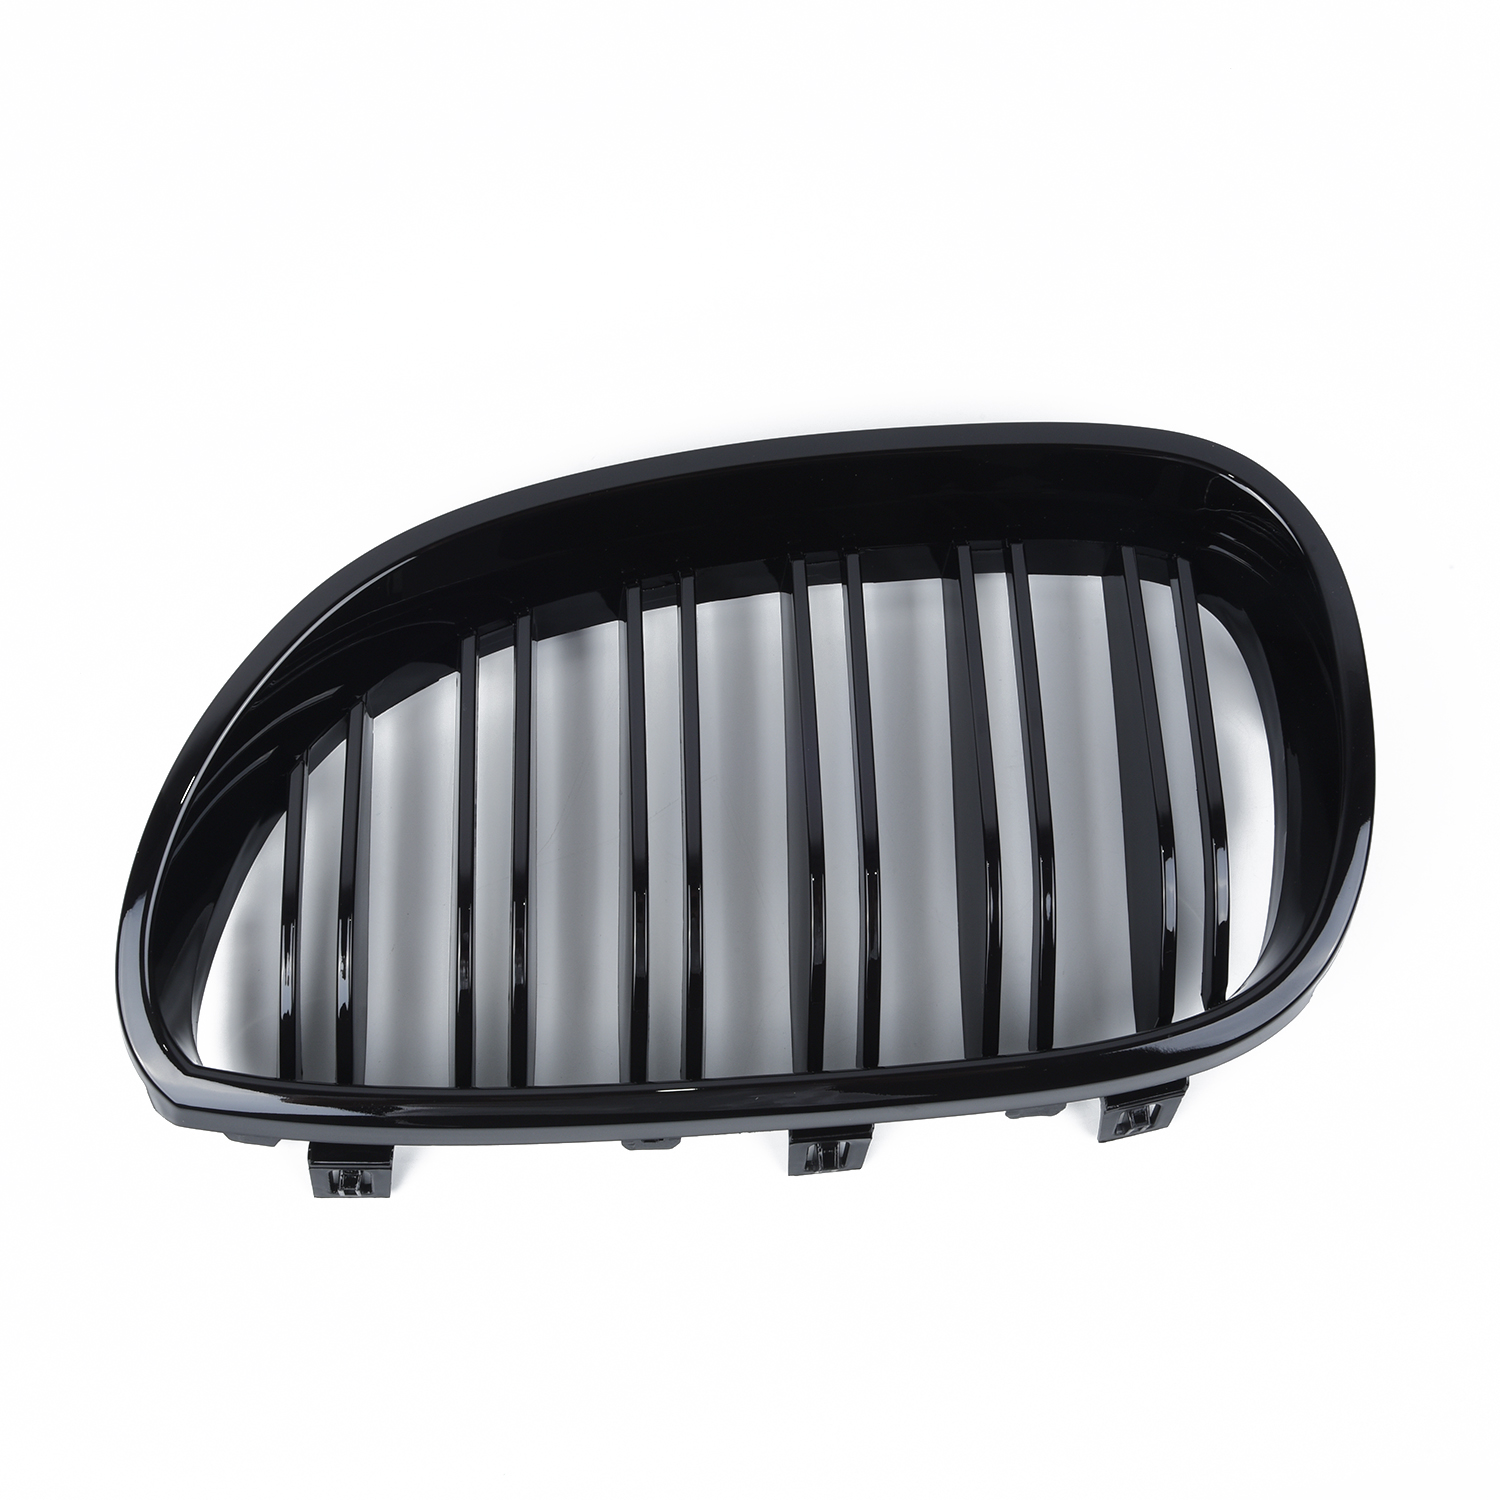 Front Kidney Grill 2PCS Replacement Fit For <font><b>BMW</b></font> <font><b>E60</b></font> E61 <font><b>5</b></font> <font><b>SERIES</b></font> 2003-2010 Exterior Parts Double Line Grille image